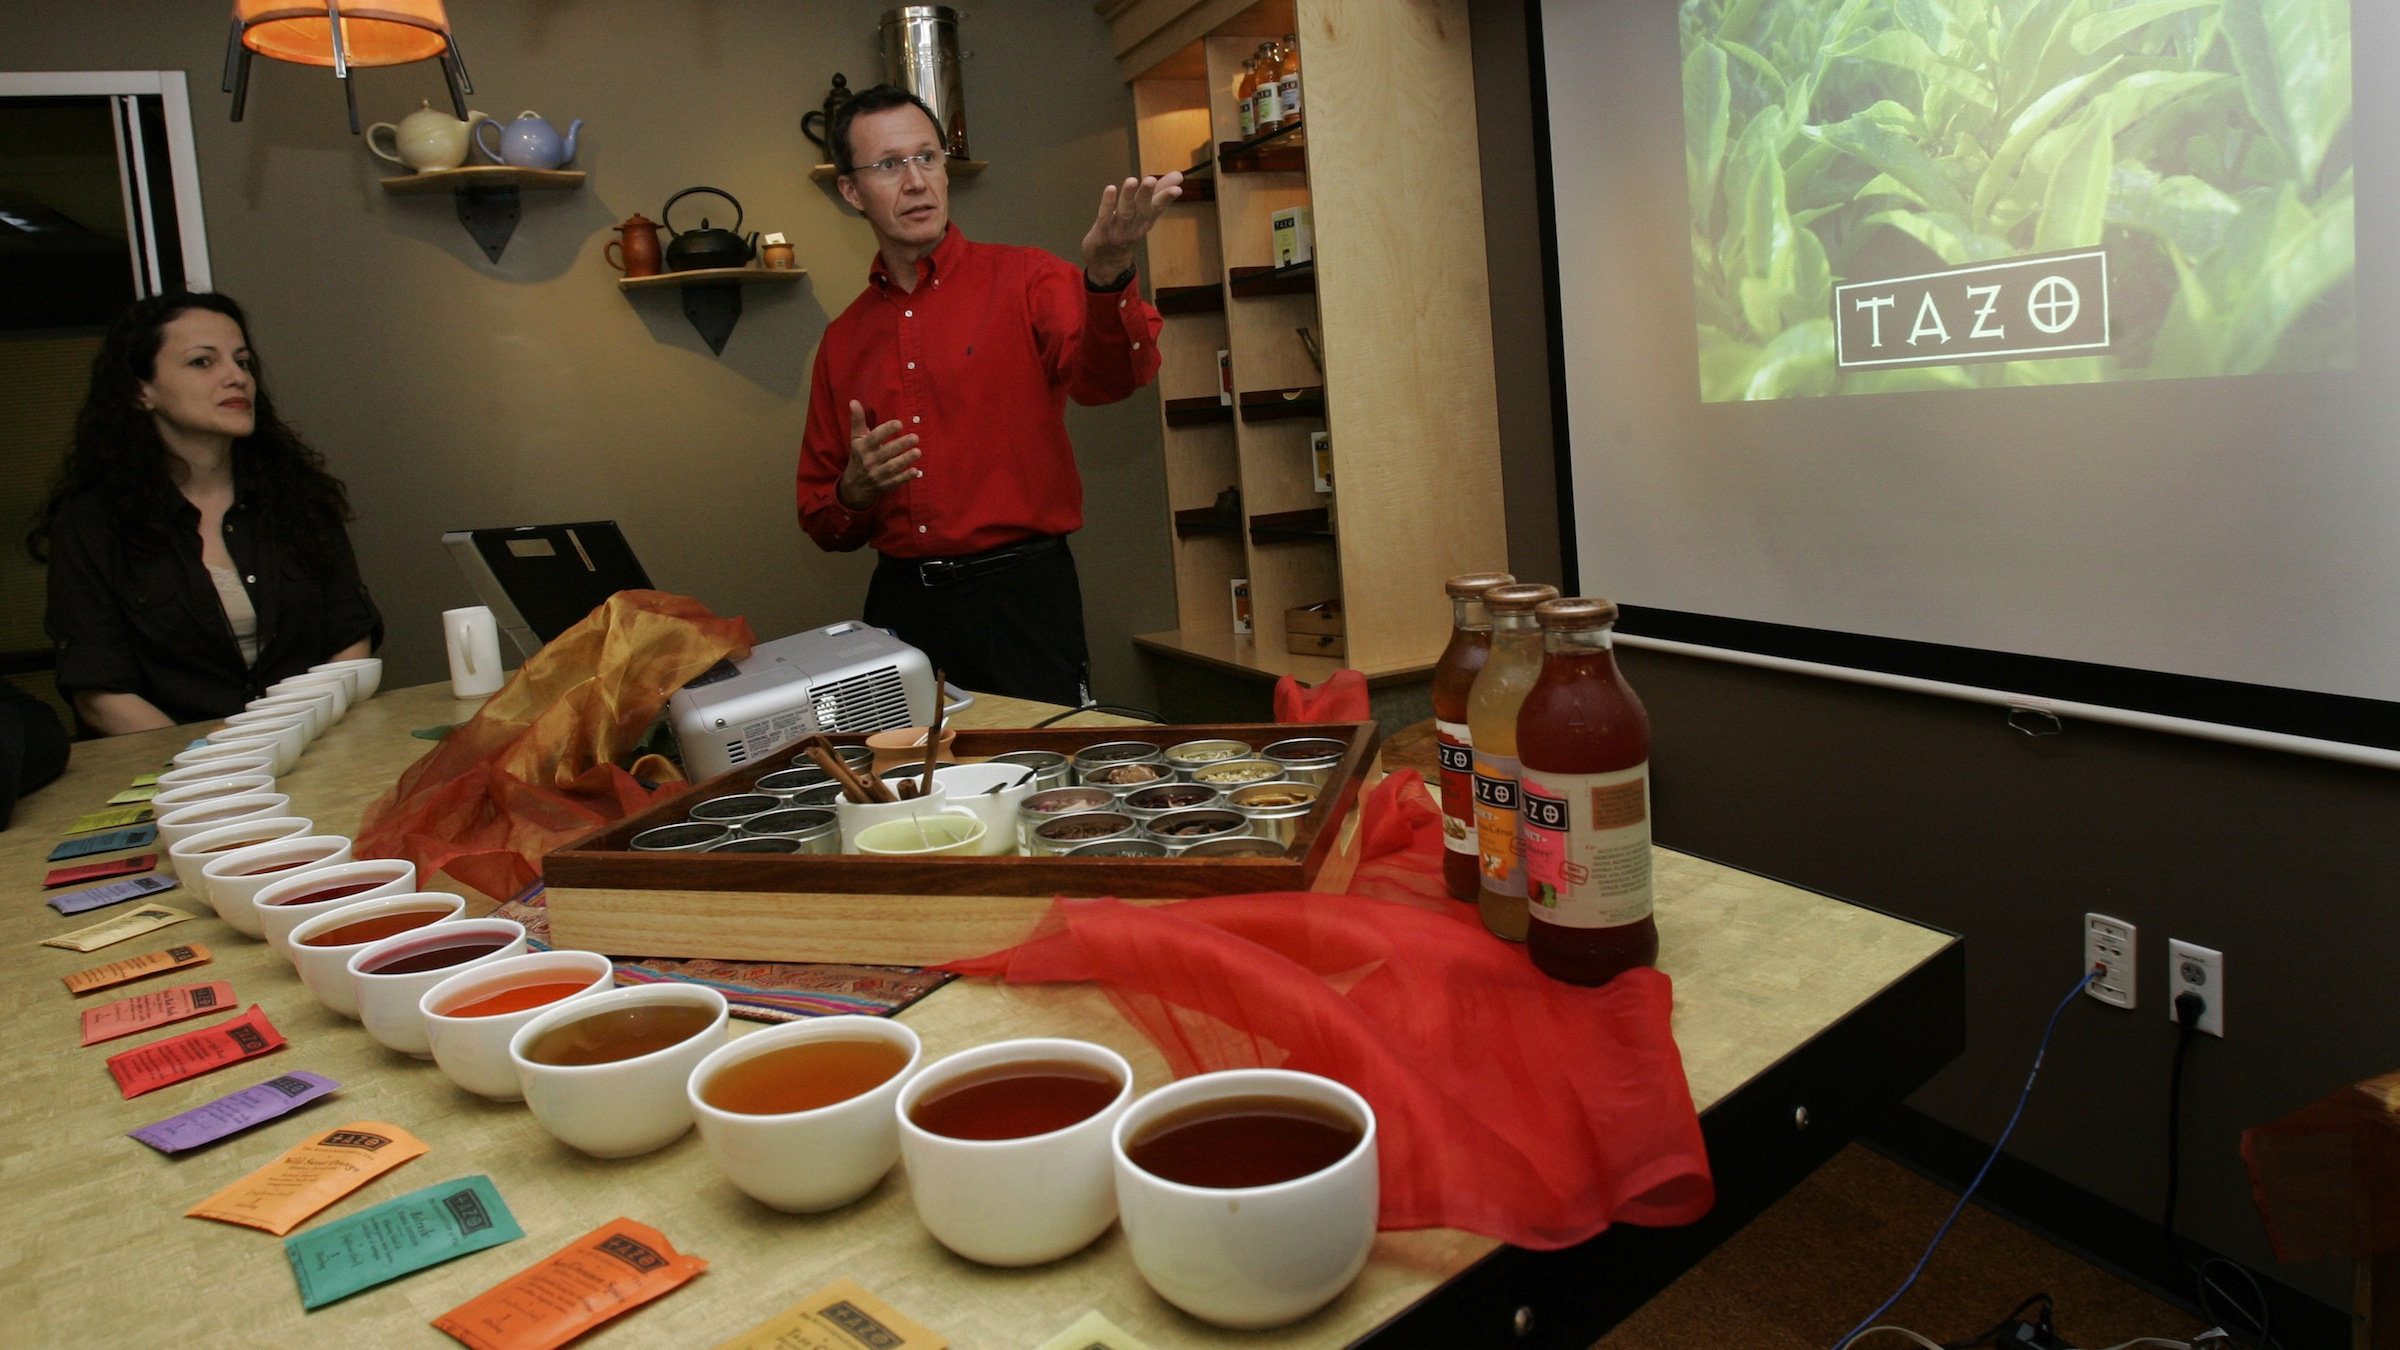 """Keith Hutjens, dirctor of tea procurement with Tazo Tea conducts a tea tasting Monday, Aug. 13, 2007 during a two-day """"Starbucks Scholars"""" media seminar at Starbucks Corp. headquarters in Seattle. Tazo is owned by Starbucks Corp. (AP Photo/Ted S. Warren)"""